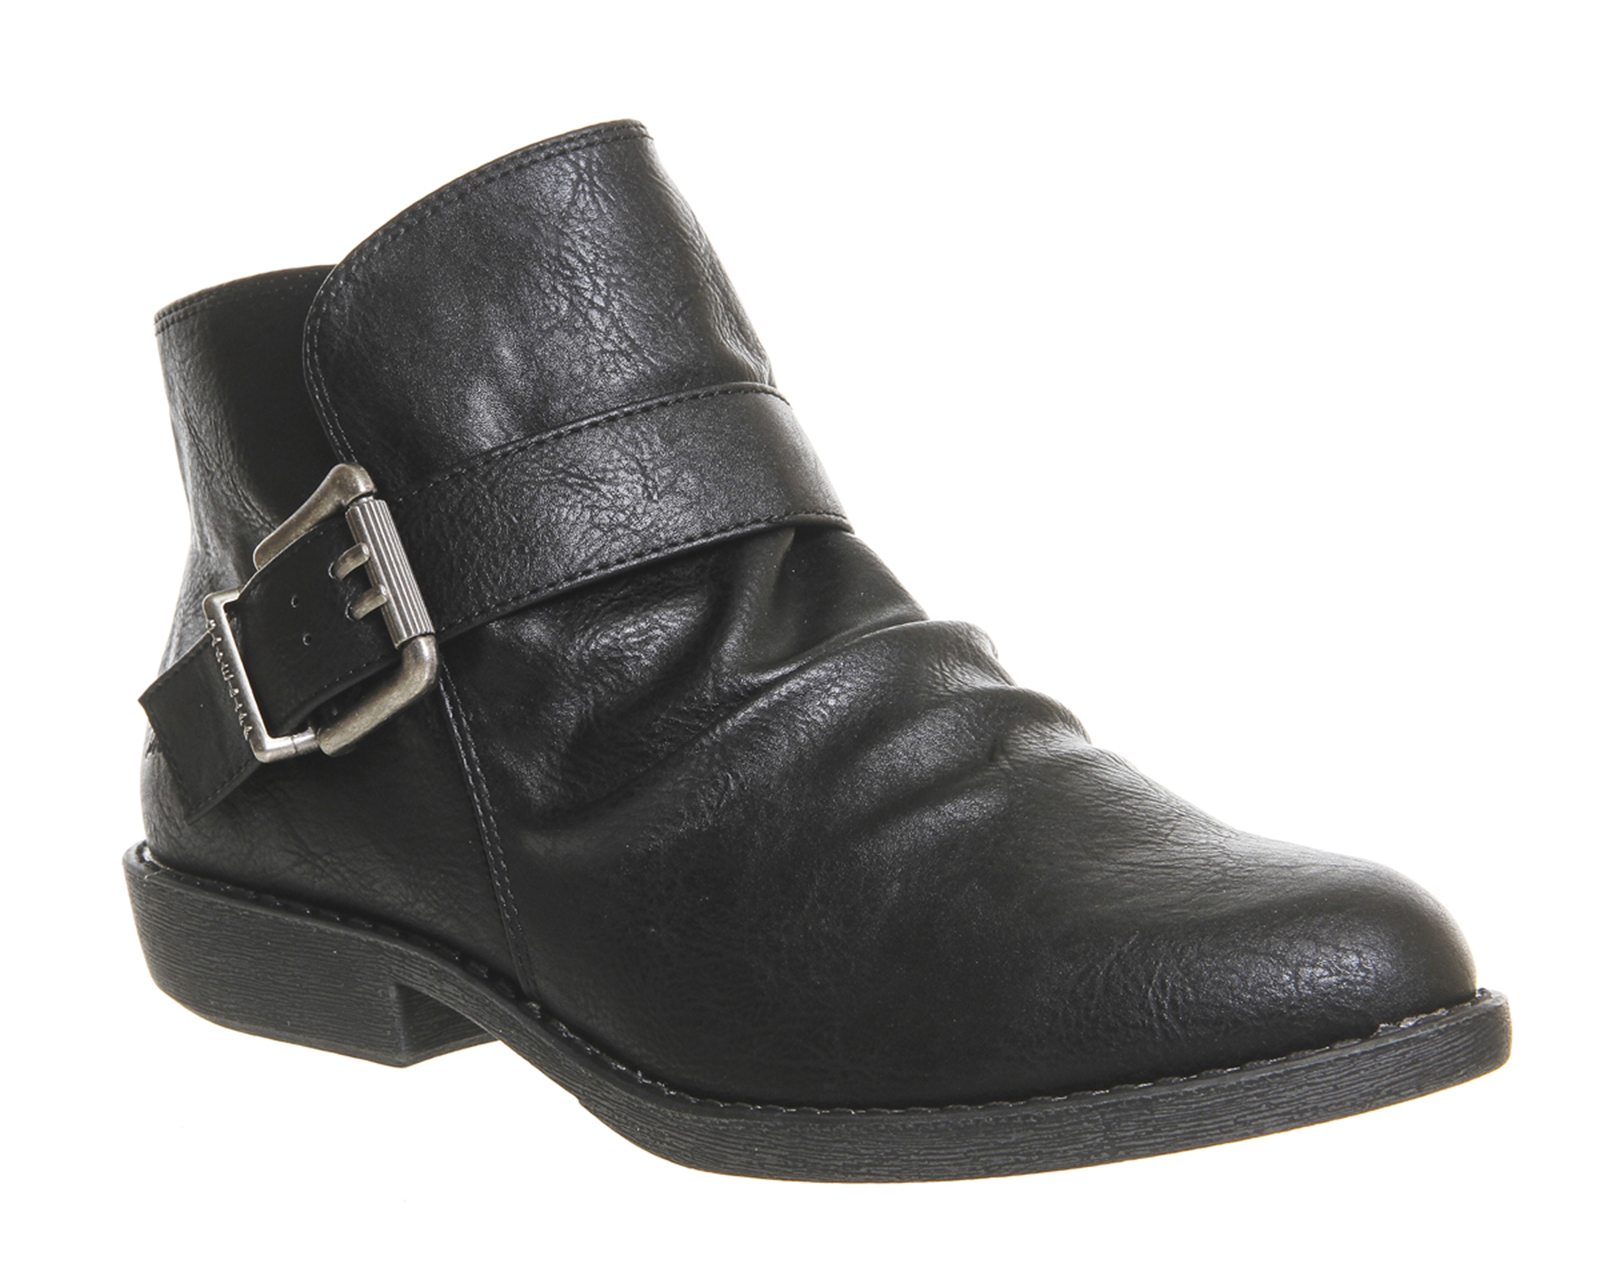 womens blowfish aeon ankle boot black ranger boots ebay